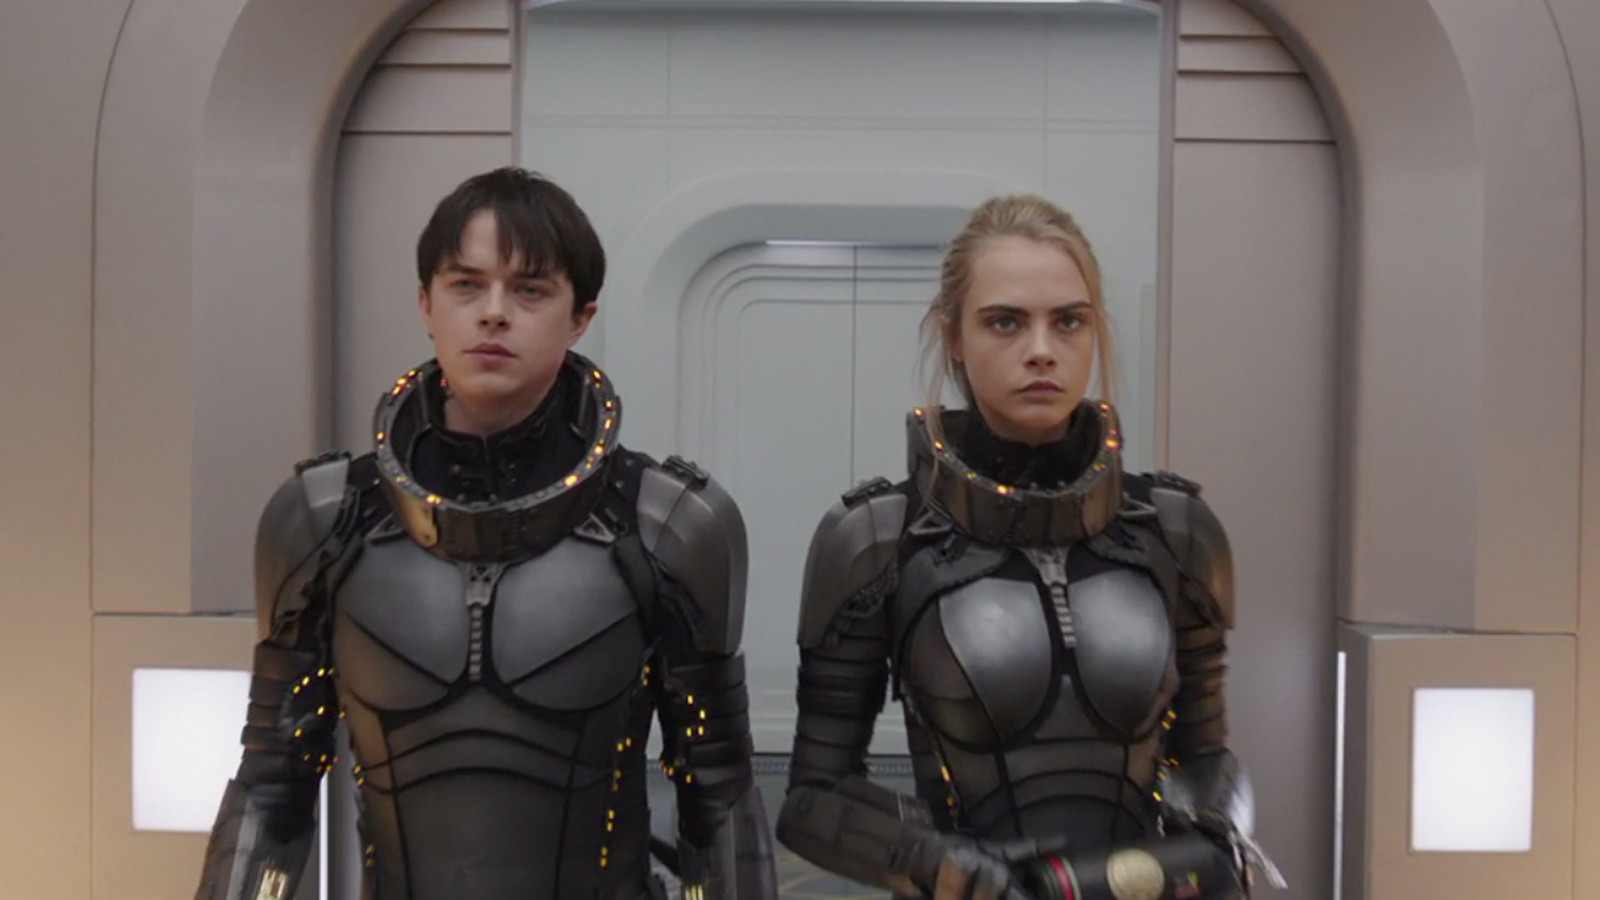 """Valerian and the City of a Thousand Planets"" is pretty weak, according to Maria McCann."